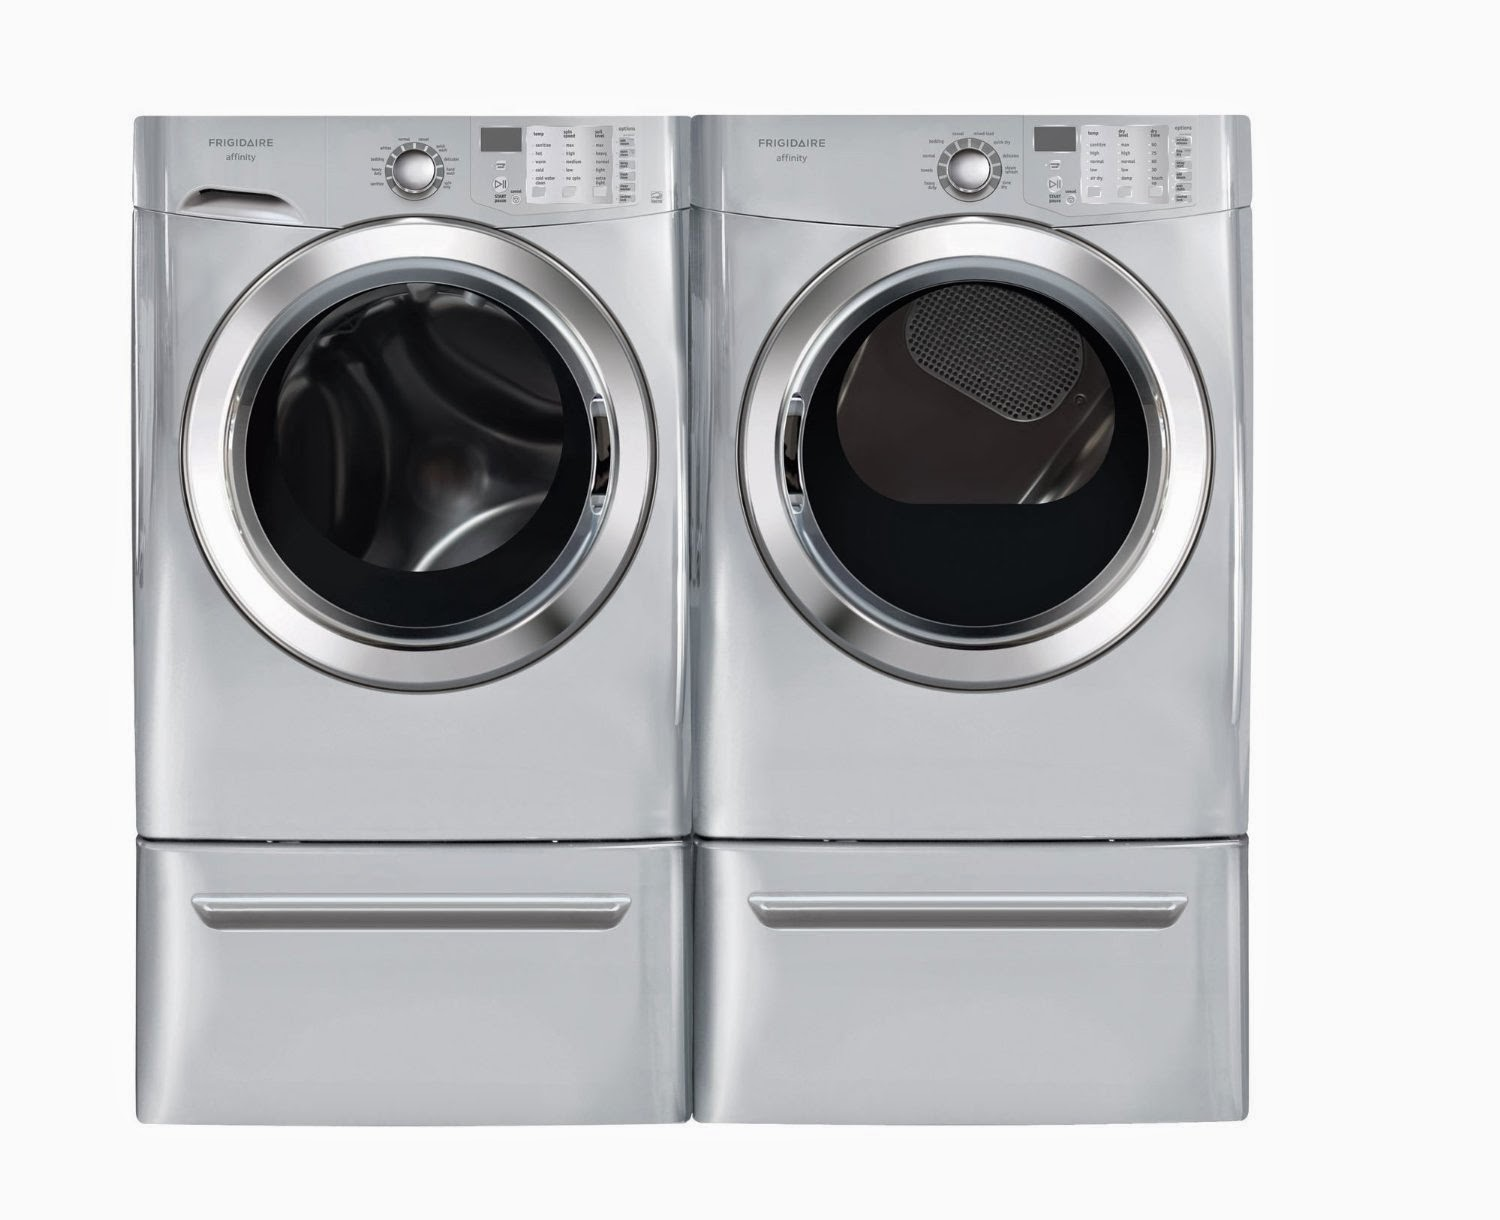 Frigidaire Affinity Silver 3 8 Cf Front Load Steam Washer Dryer Laundry Set With Pedestals